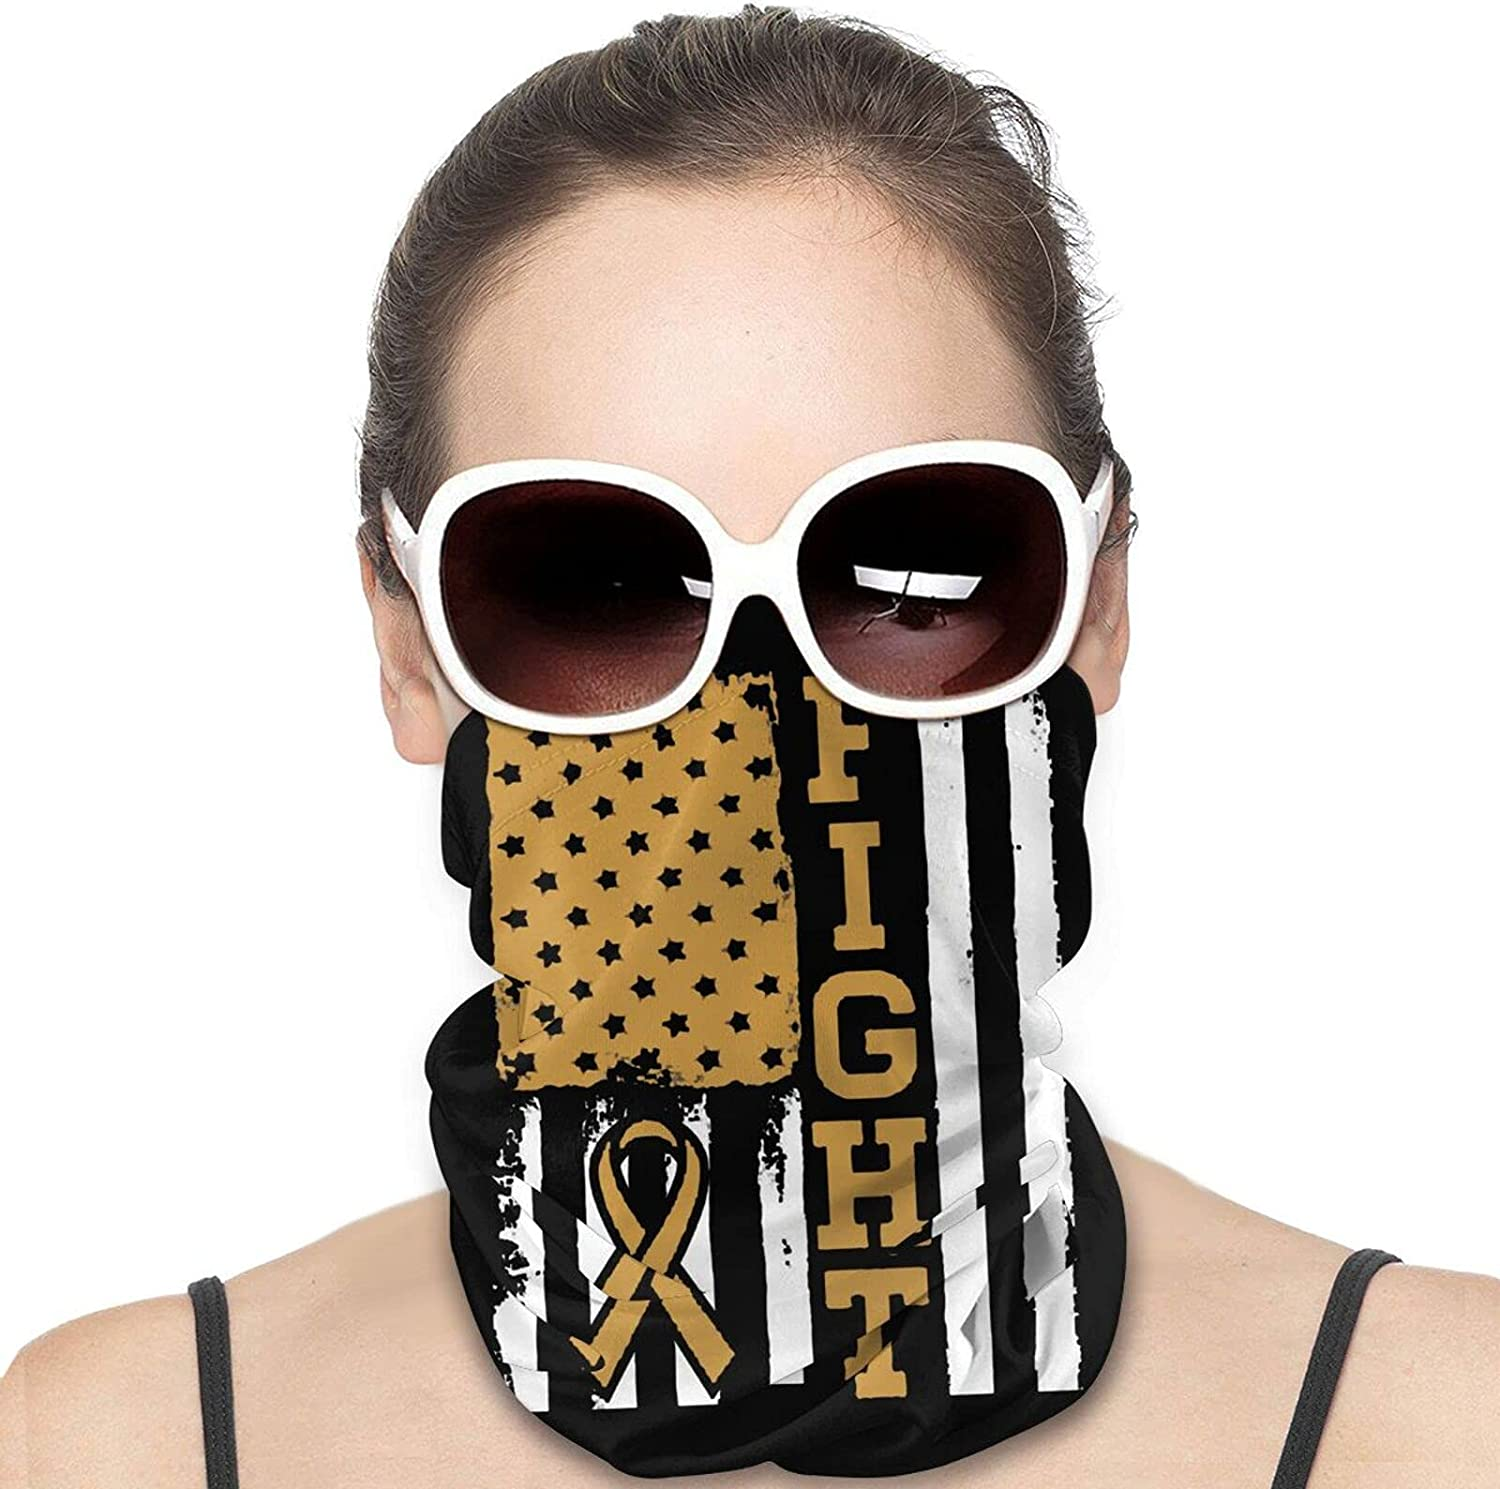 Appendix Cancer Fight Flag Round Neck Gaiter Bandnas Face Cover Uv Protection Prevent bask in Ice Scarf Headbands Perfect for Motorcycle Cycling Running Festival Raves Outdoors